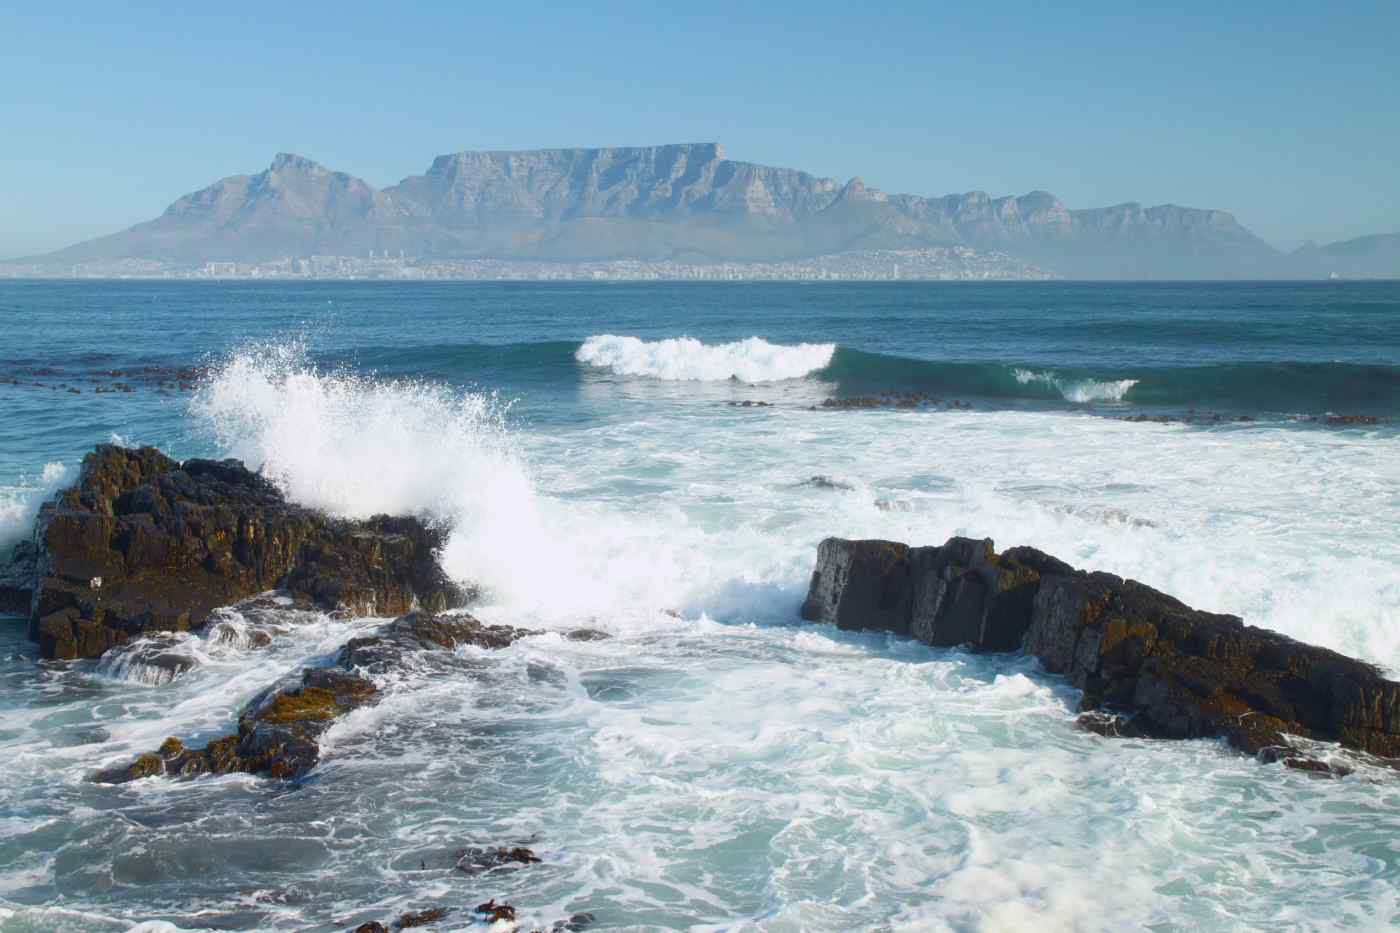 View from Robben Island, South Africa